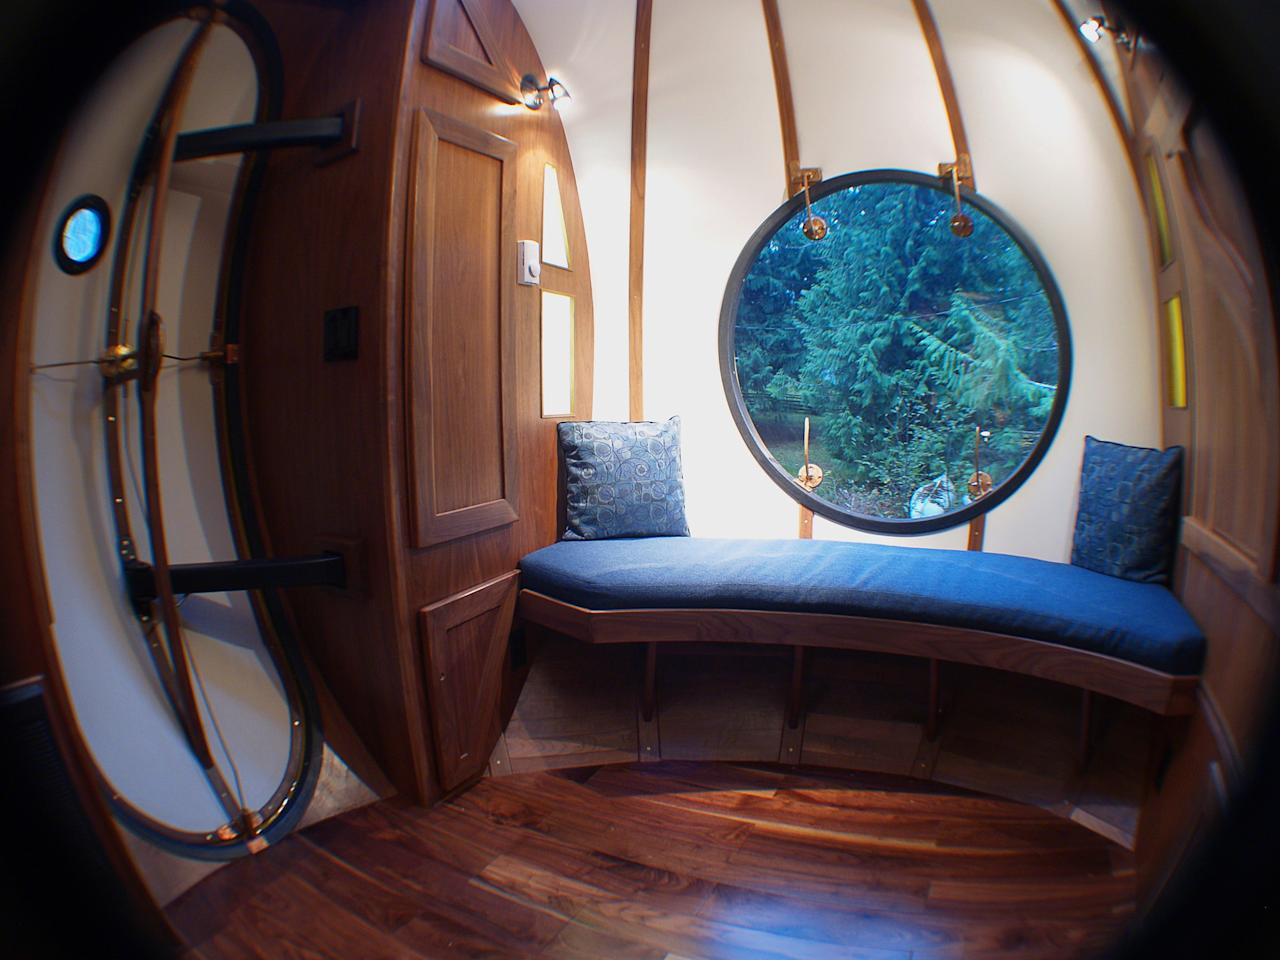 Interior view of a Free Spirit Spheres treehouse is shown in Qualicum Beach on Vancouver Island in a handout photo.Climbing trees and building tree forts are common activities for kids, and often as kids grow up they give up their love for playing in the trees. Tom Chudleigh, on the other hand, has been building tree houses for 20 years.